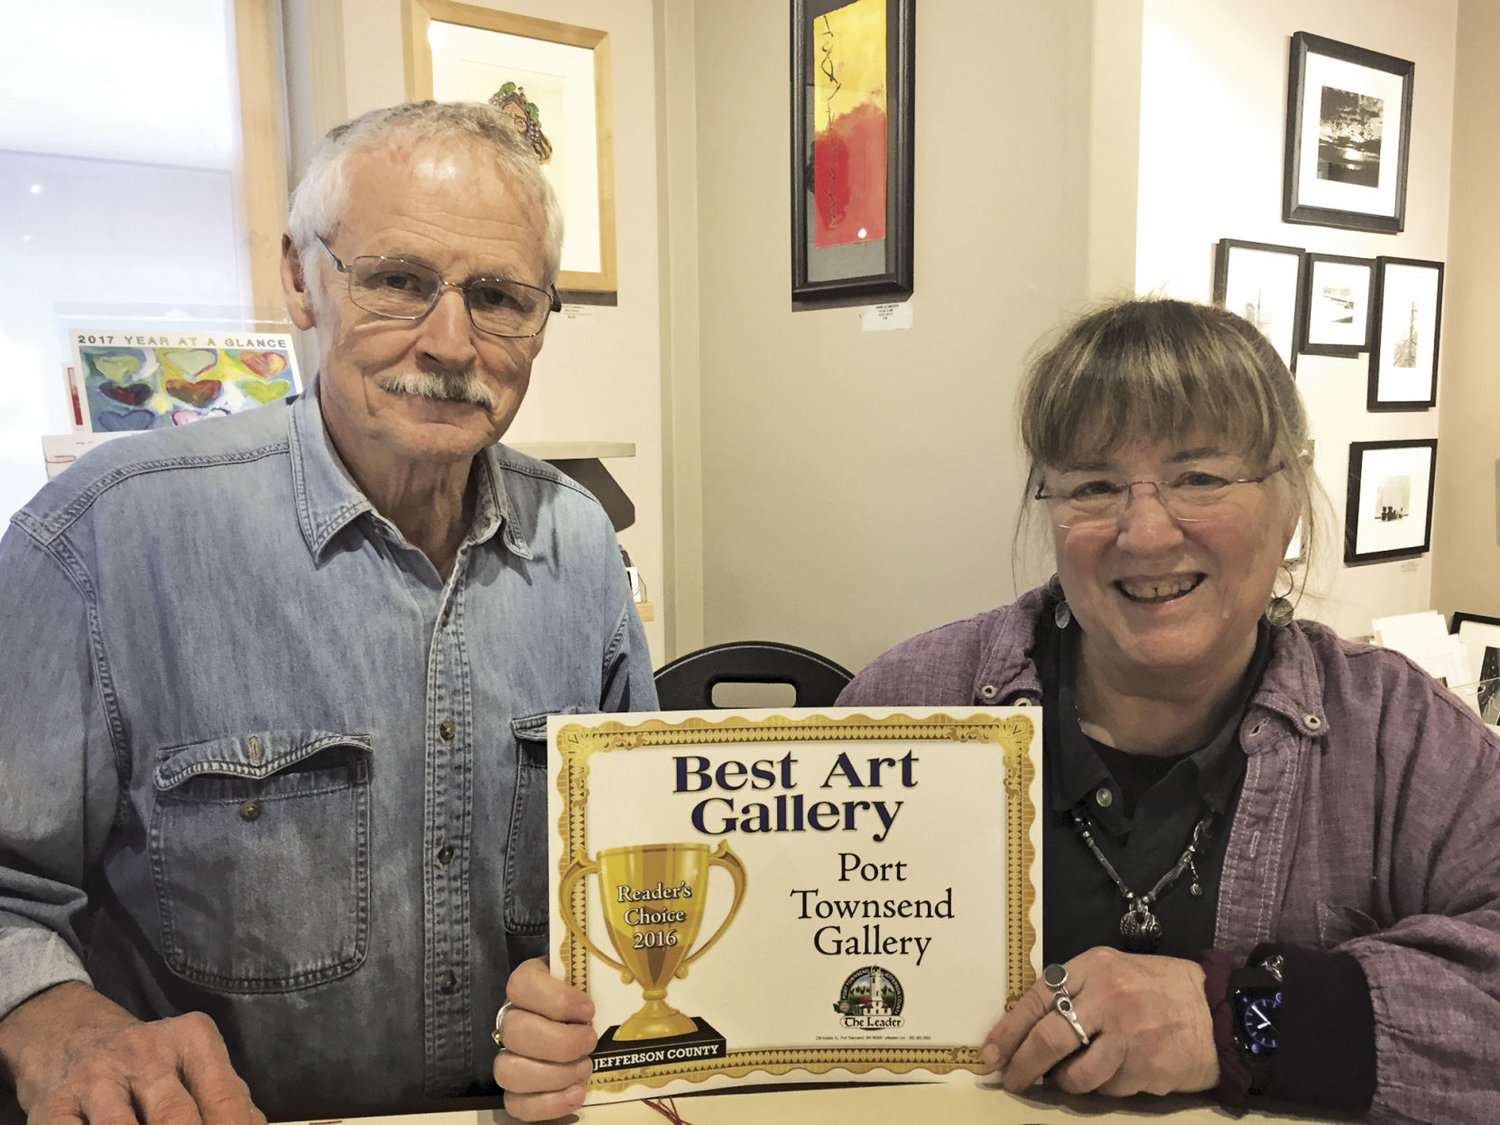 David Haakenson and Caroline Littlefield at Port Townsend Gallery appreciate the customer appreciation.